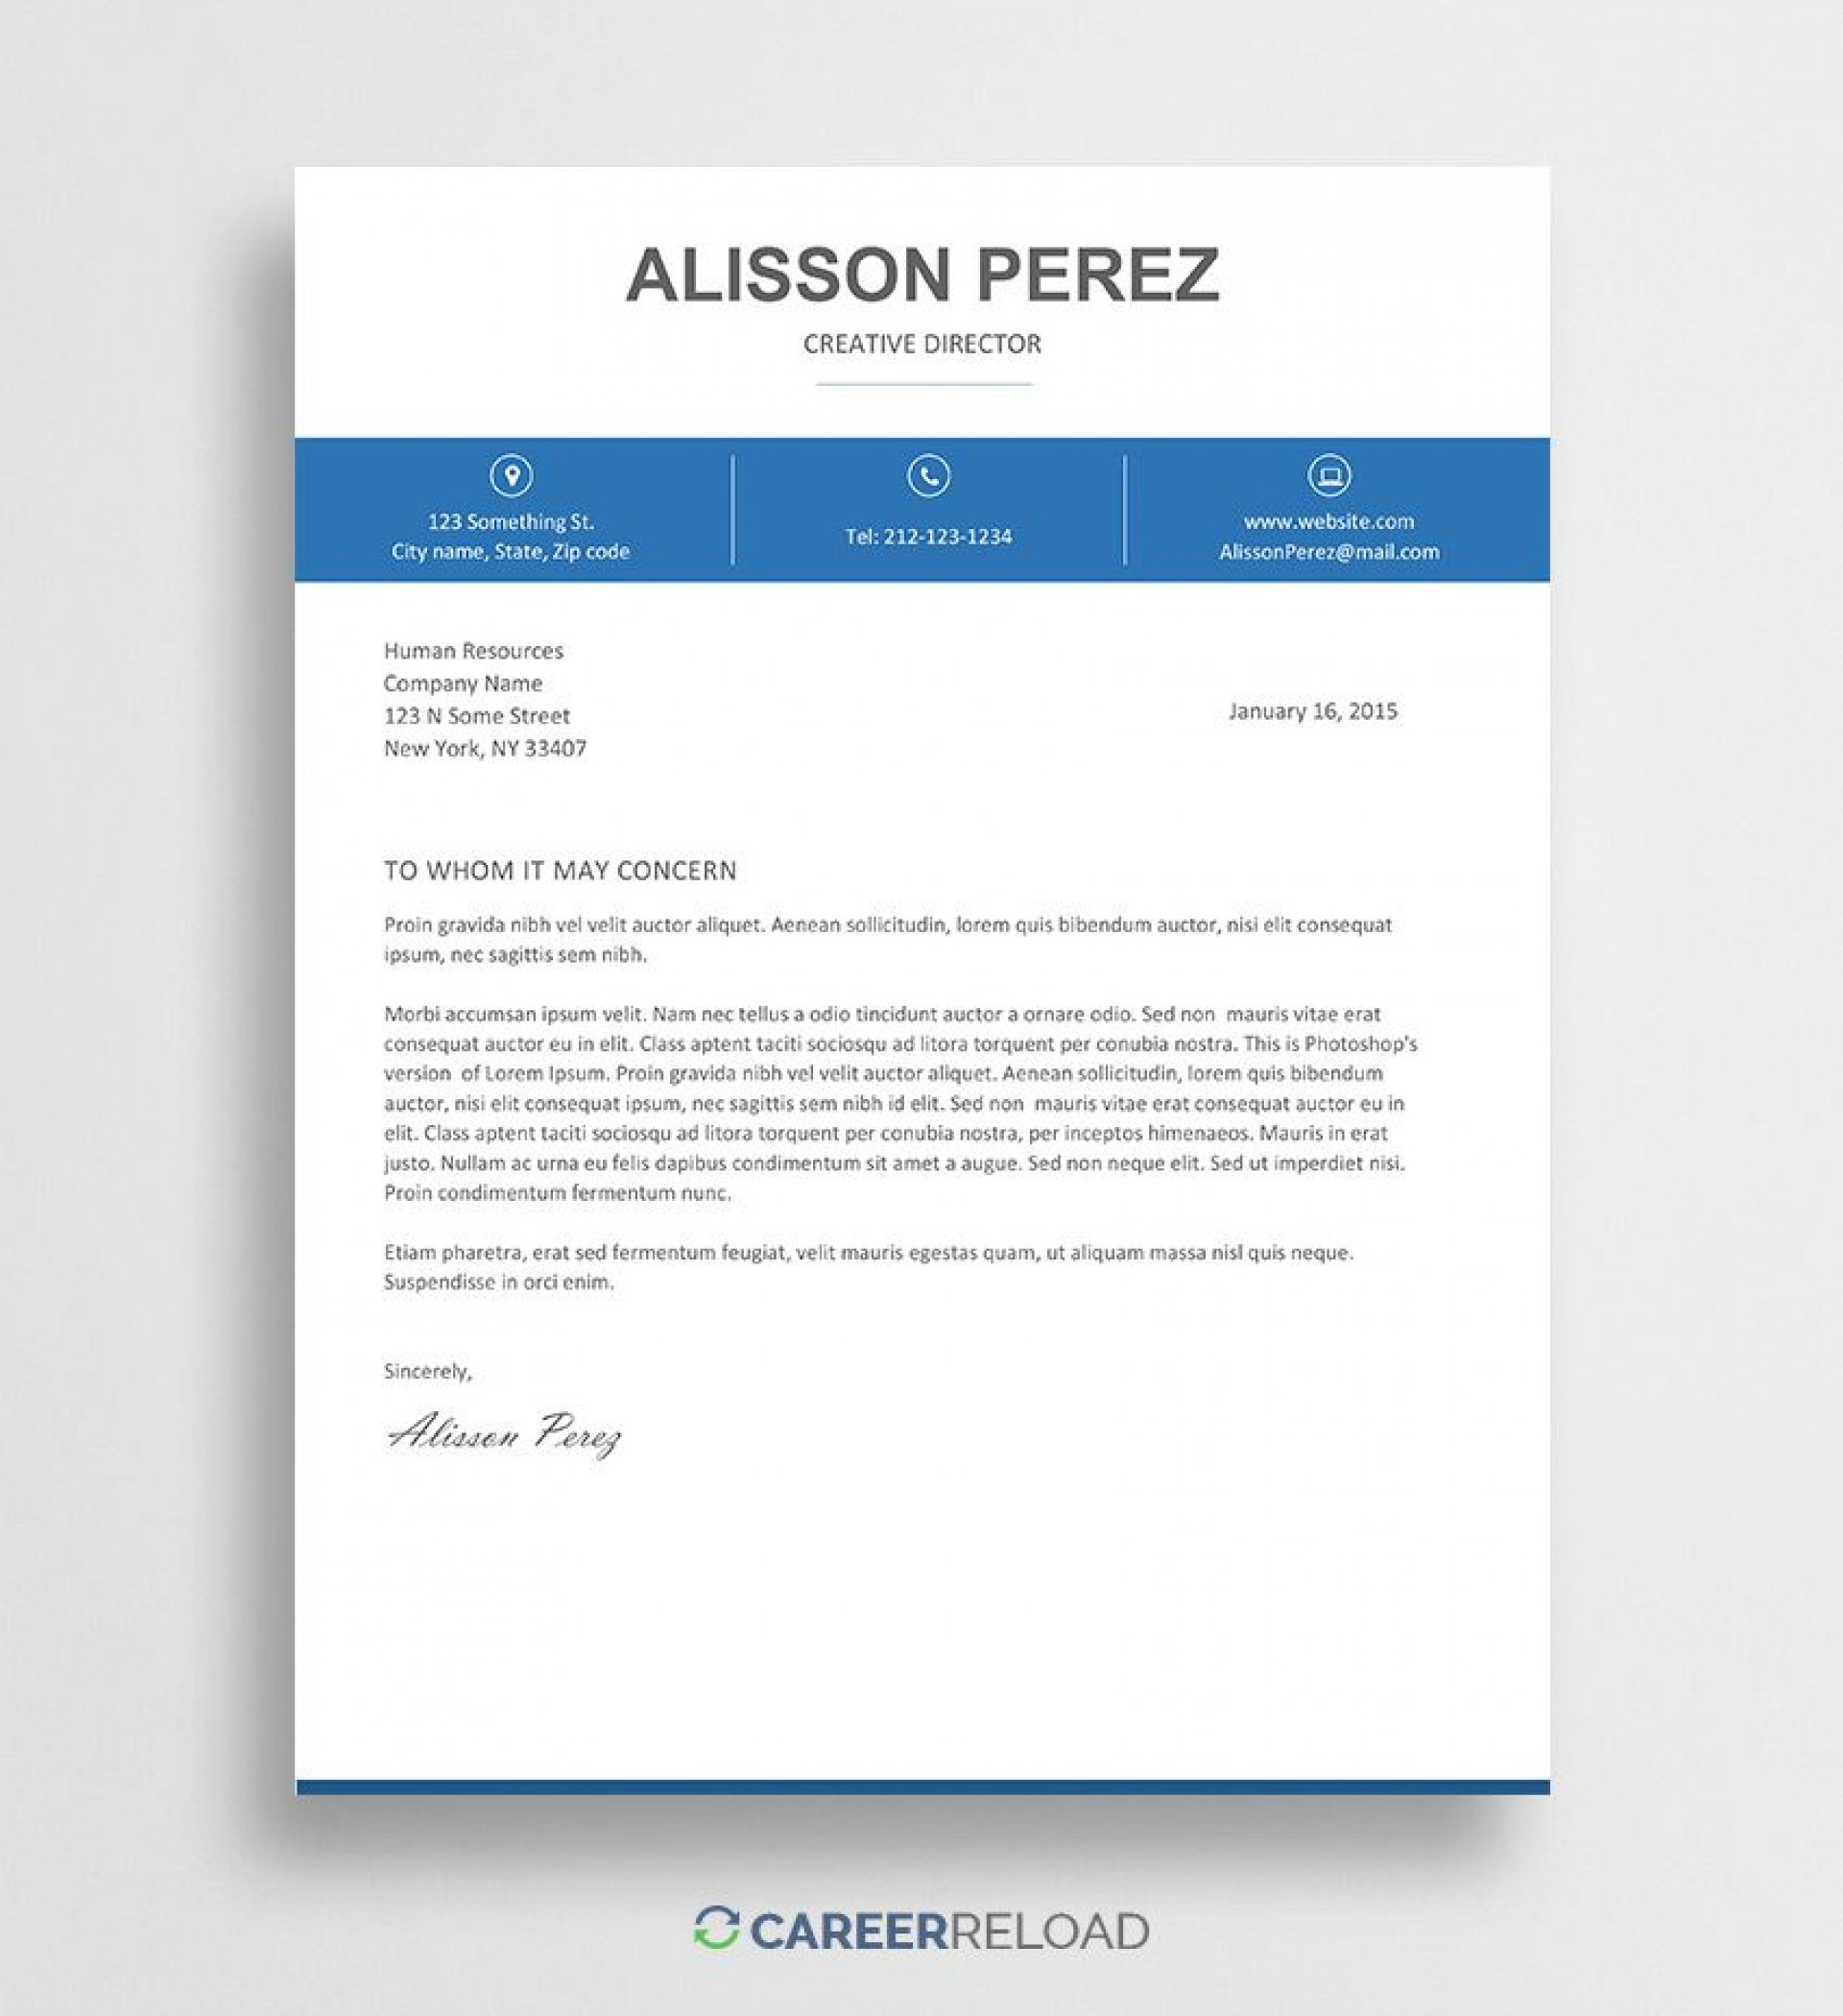 004 Phenomenal Cover Letter Free Template Sample  Download Word Doc1920